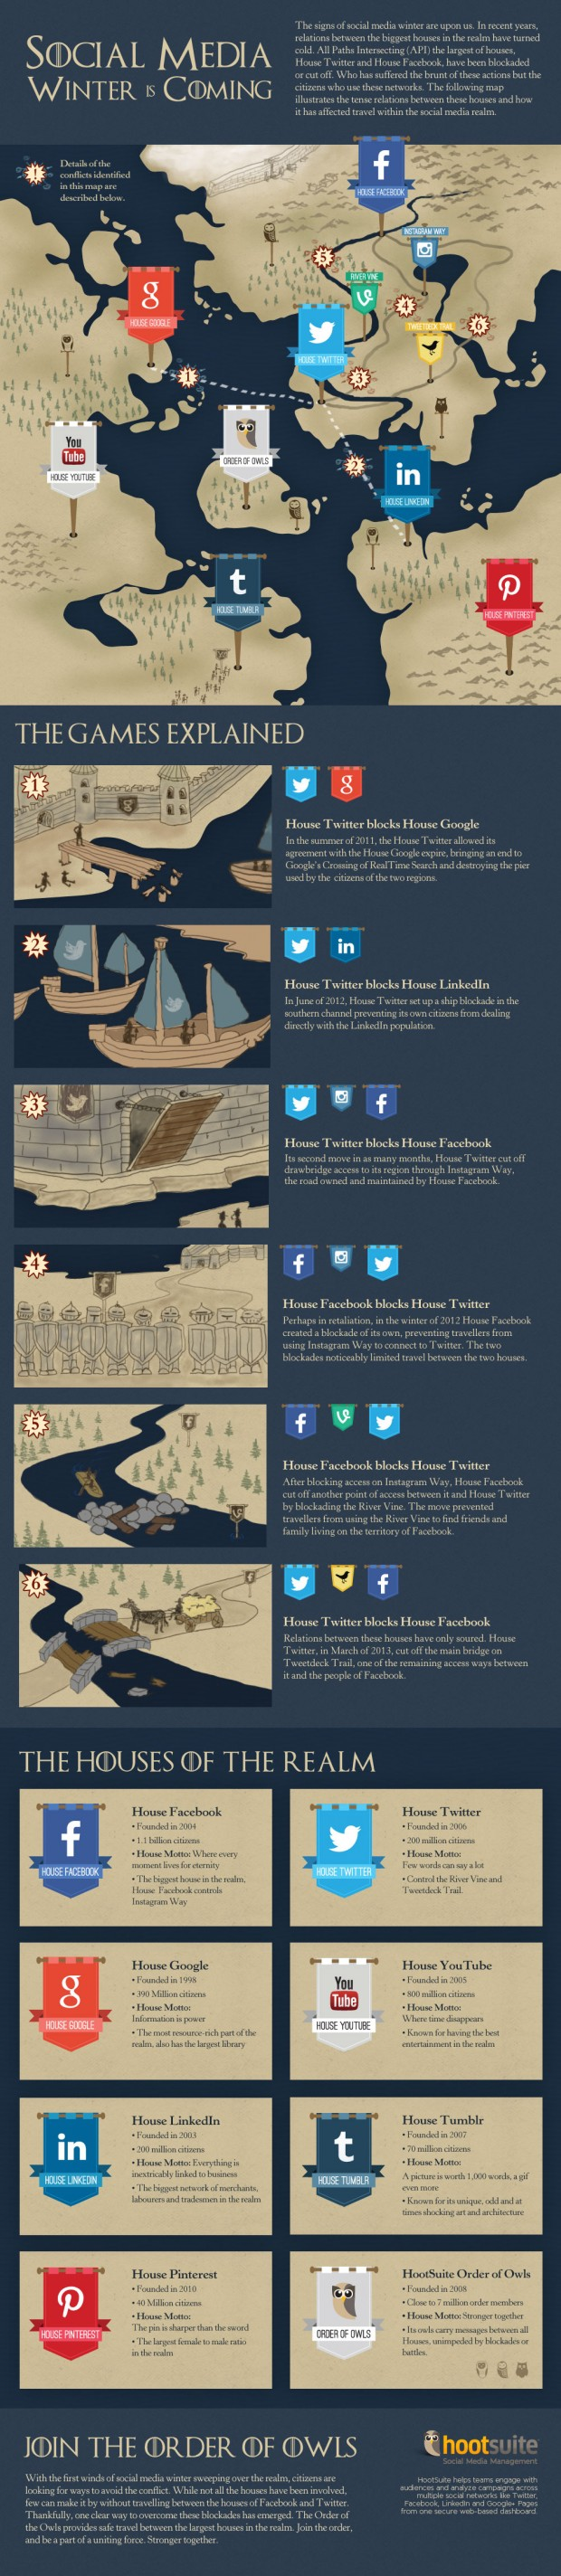 The Game of Thrones, strijd tussen alle Social Media platformen. Wie is de koning van Social Media? Hootsuite maakte deze infographic gebaseerd op de populaire serie Game of Thrones!